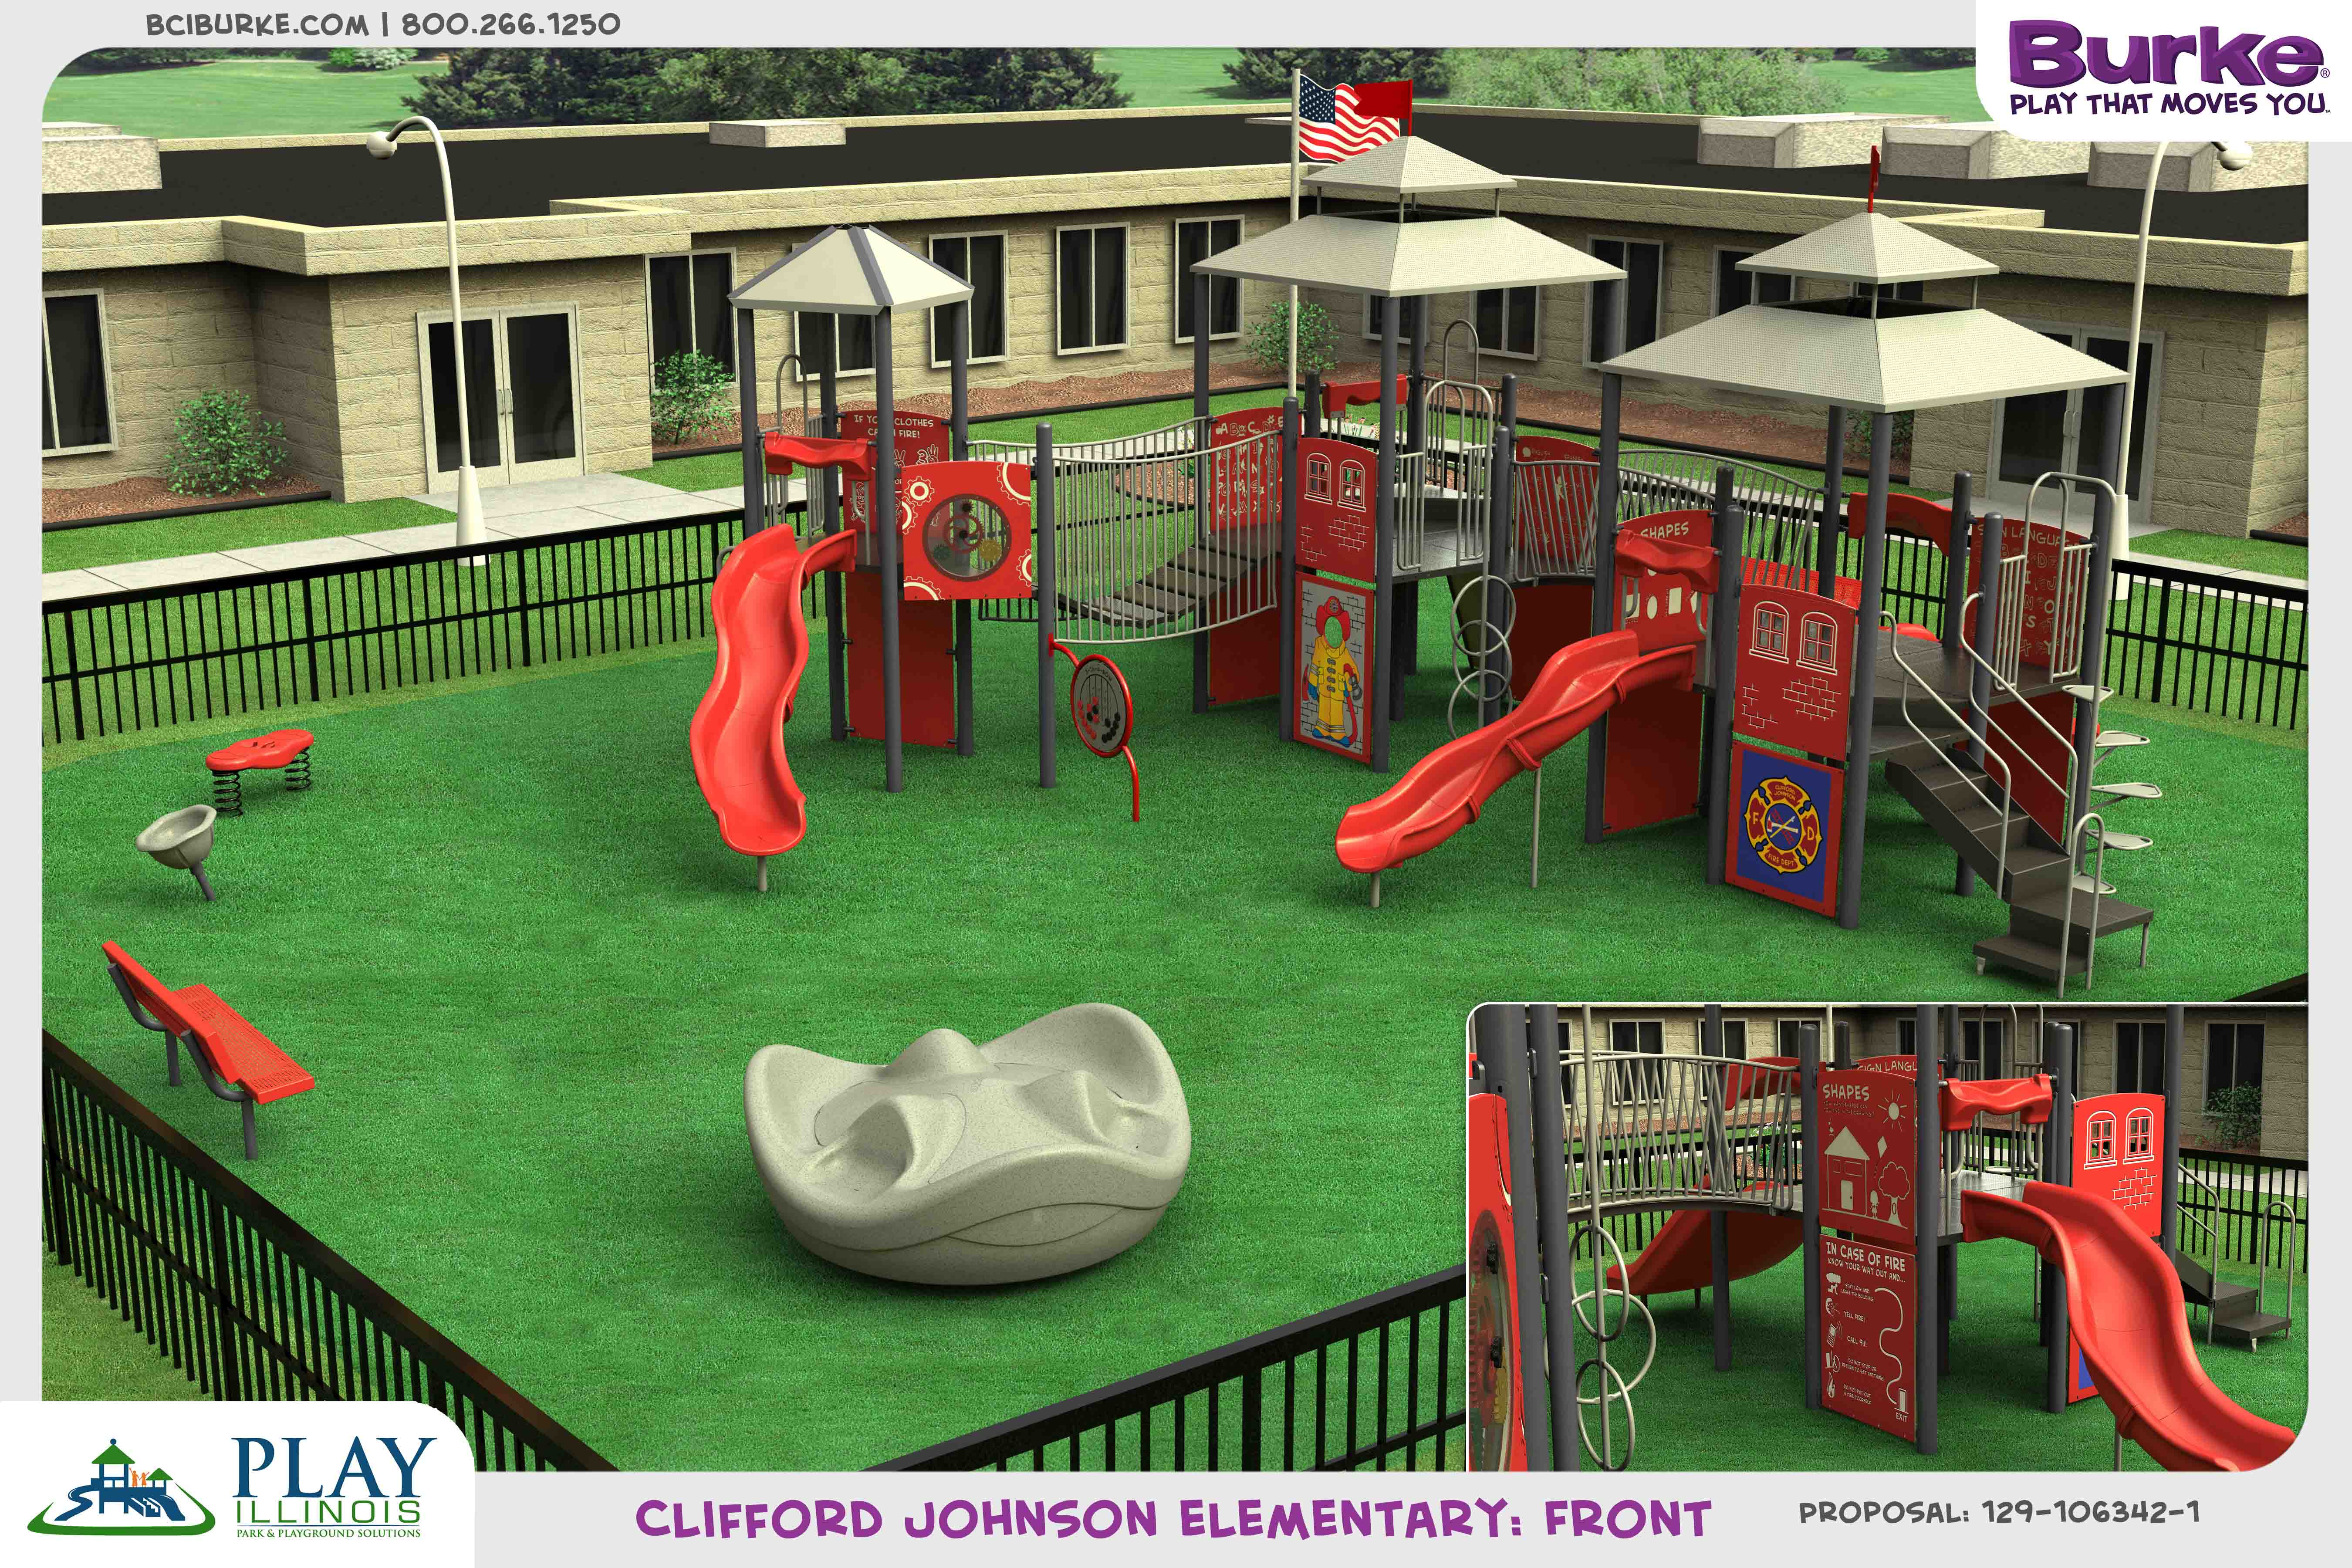 129-106342-1C-copy_MC_CliffordJohnson dream build play experience accessible playgrounds